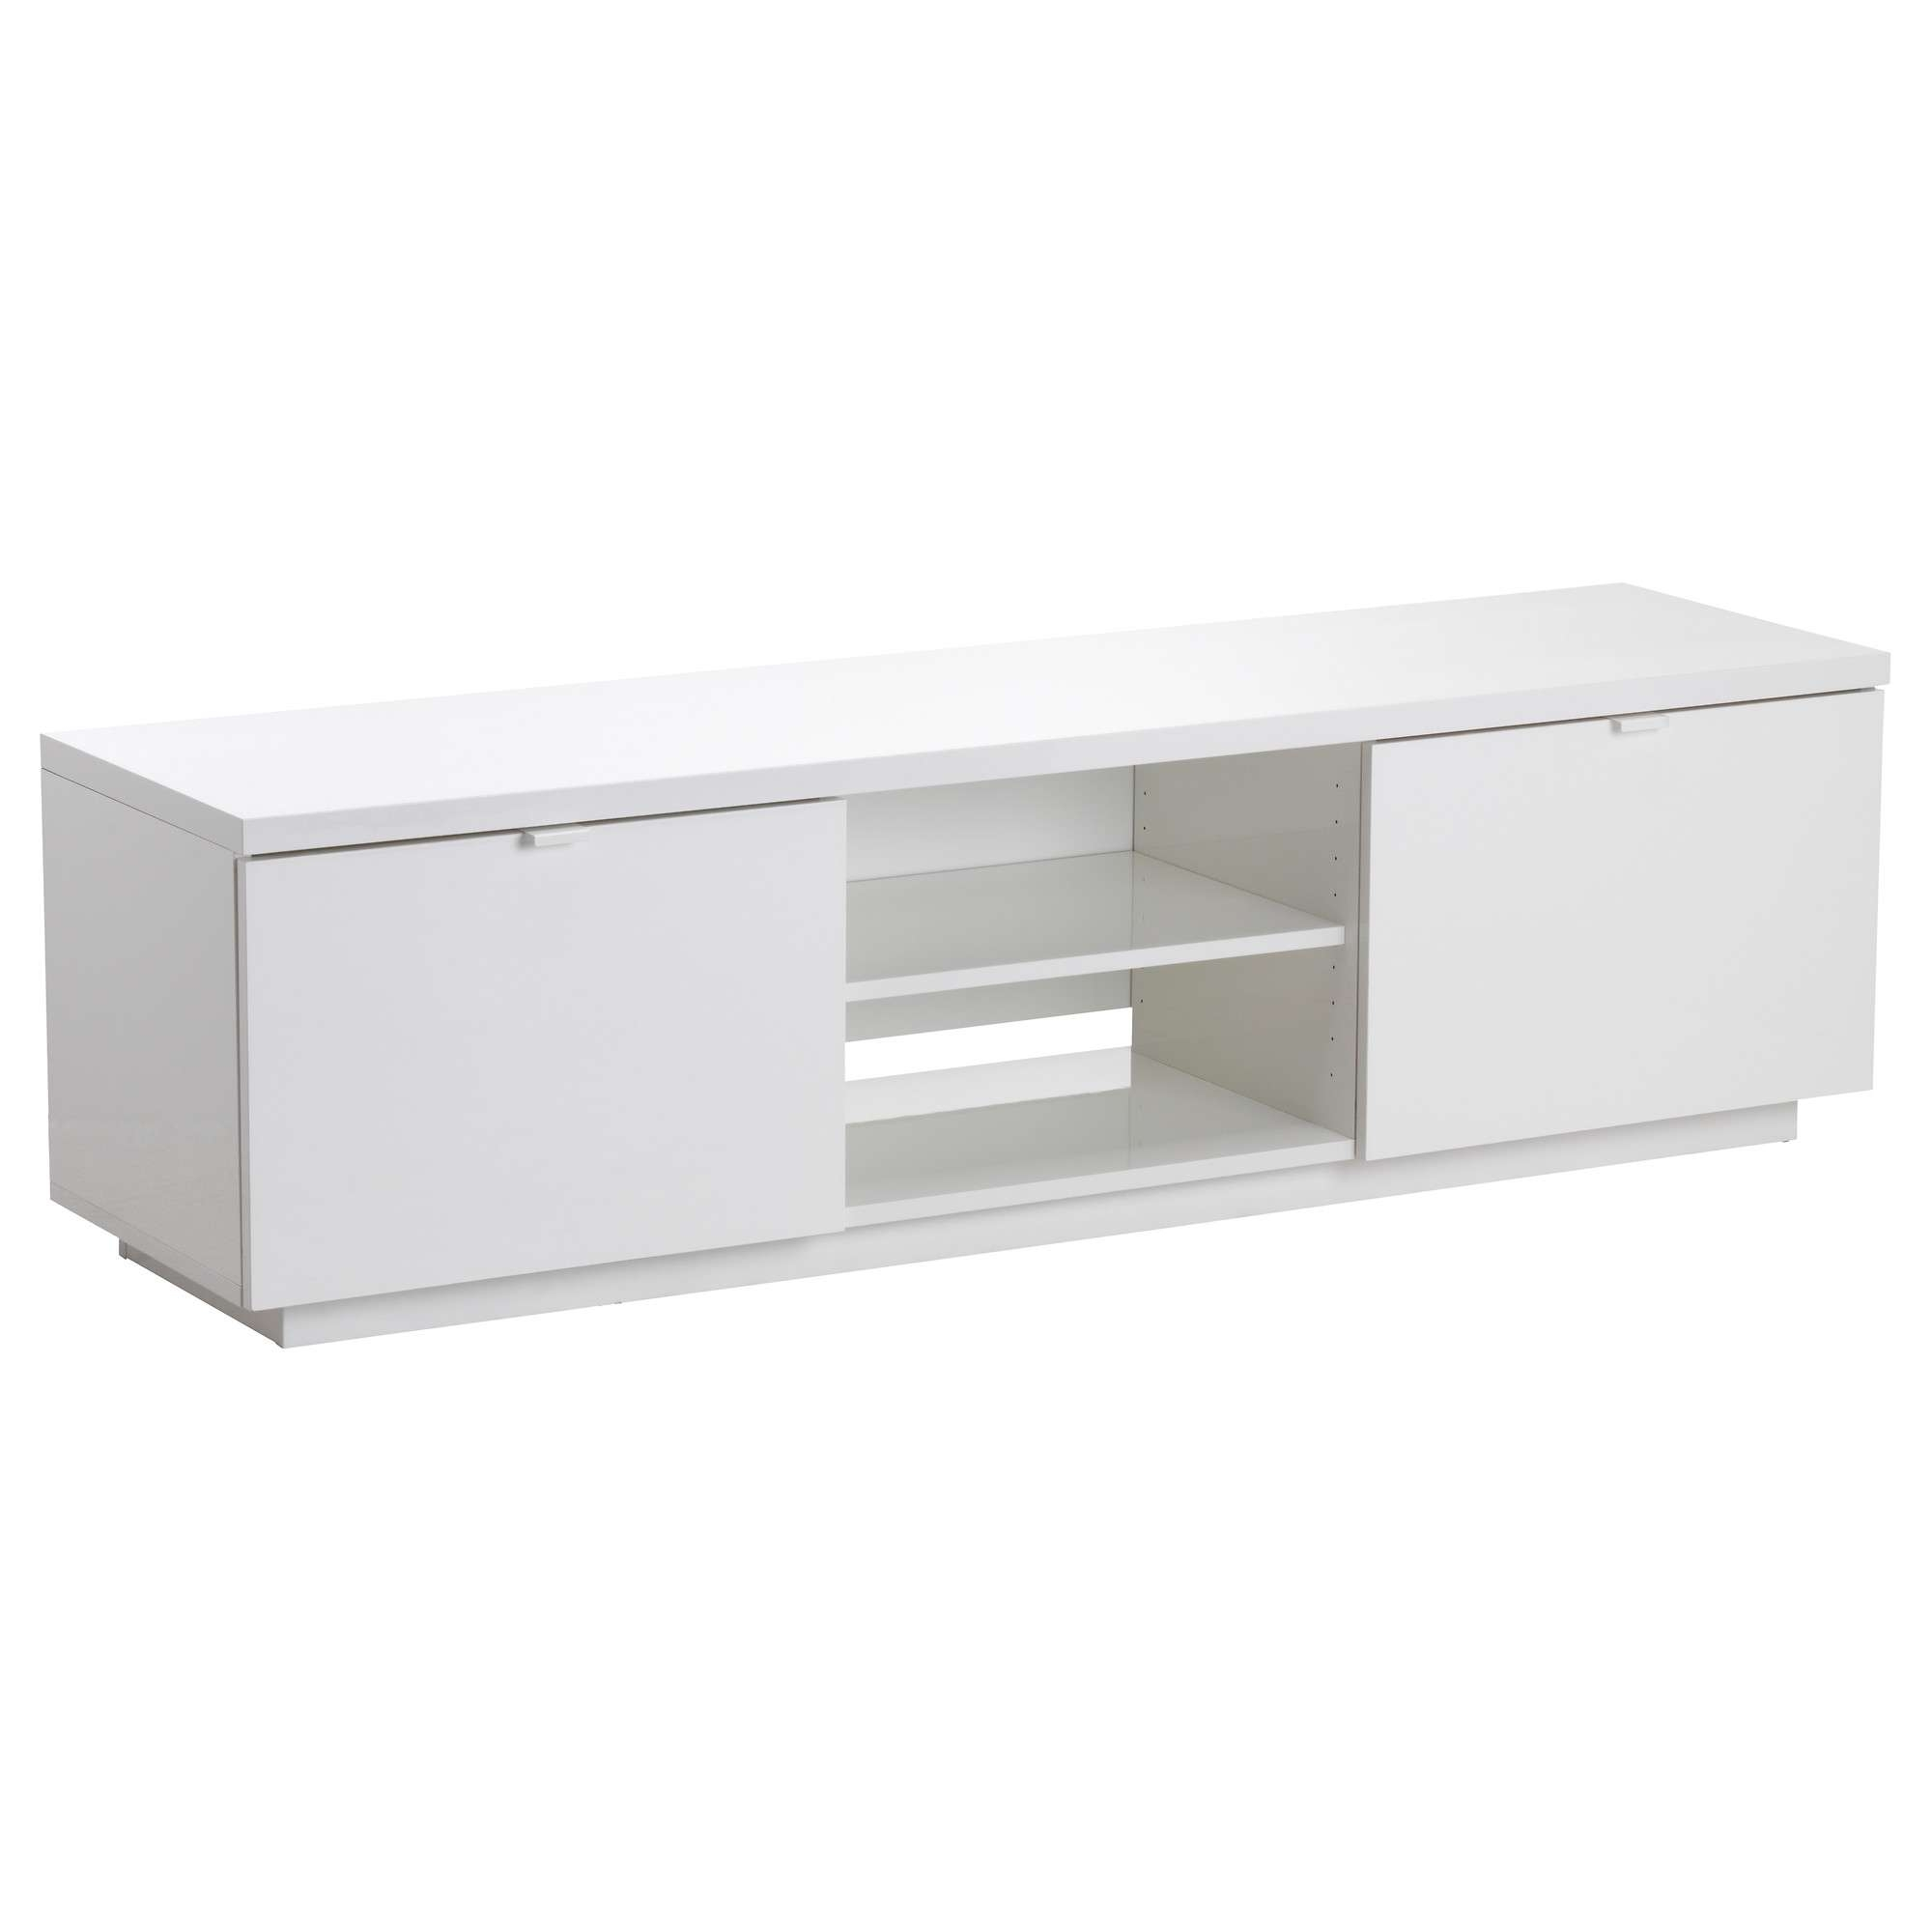 Byås Tv Bench High Gloss White 160x42x45 Cm – Ikea Throughout White Gloss Tv Cabinets (View 6 of 20)